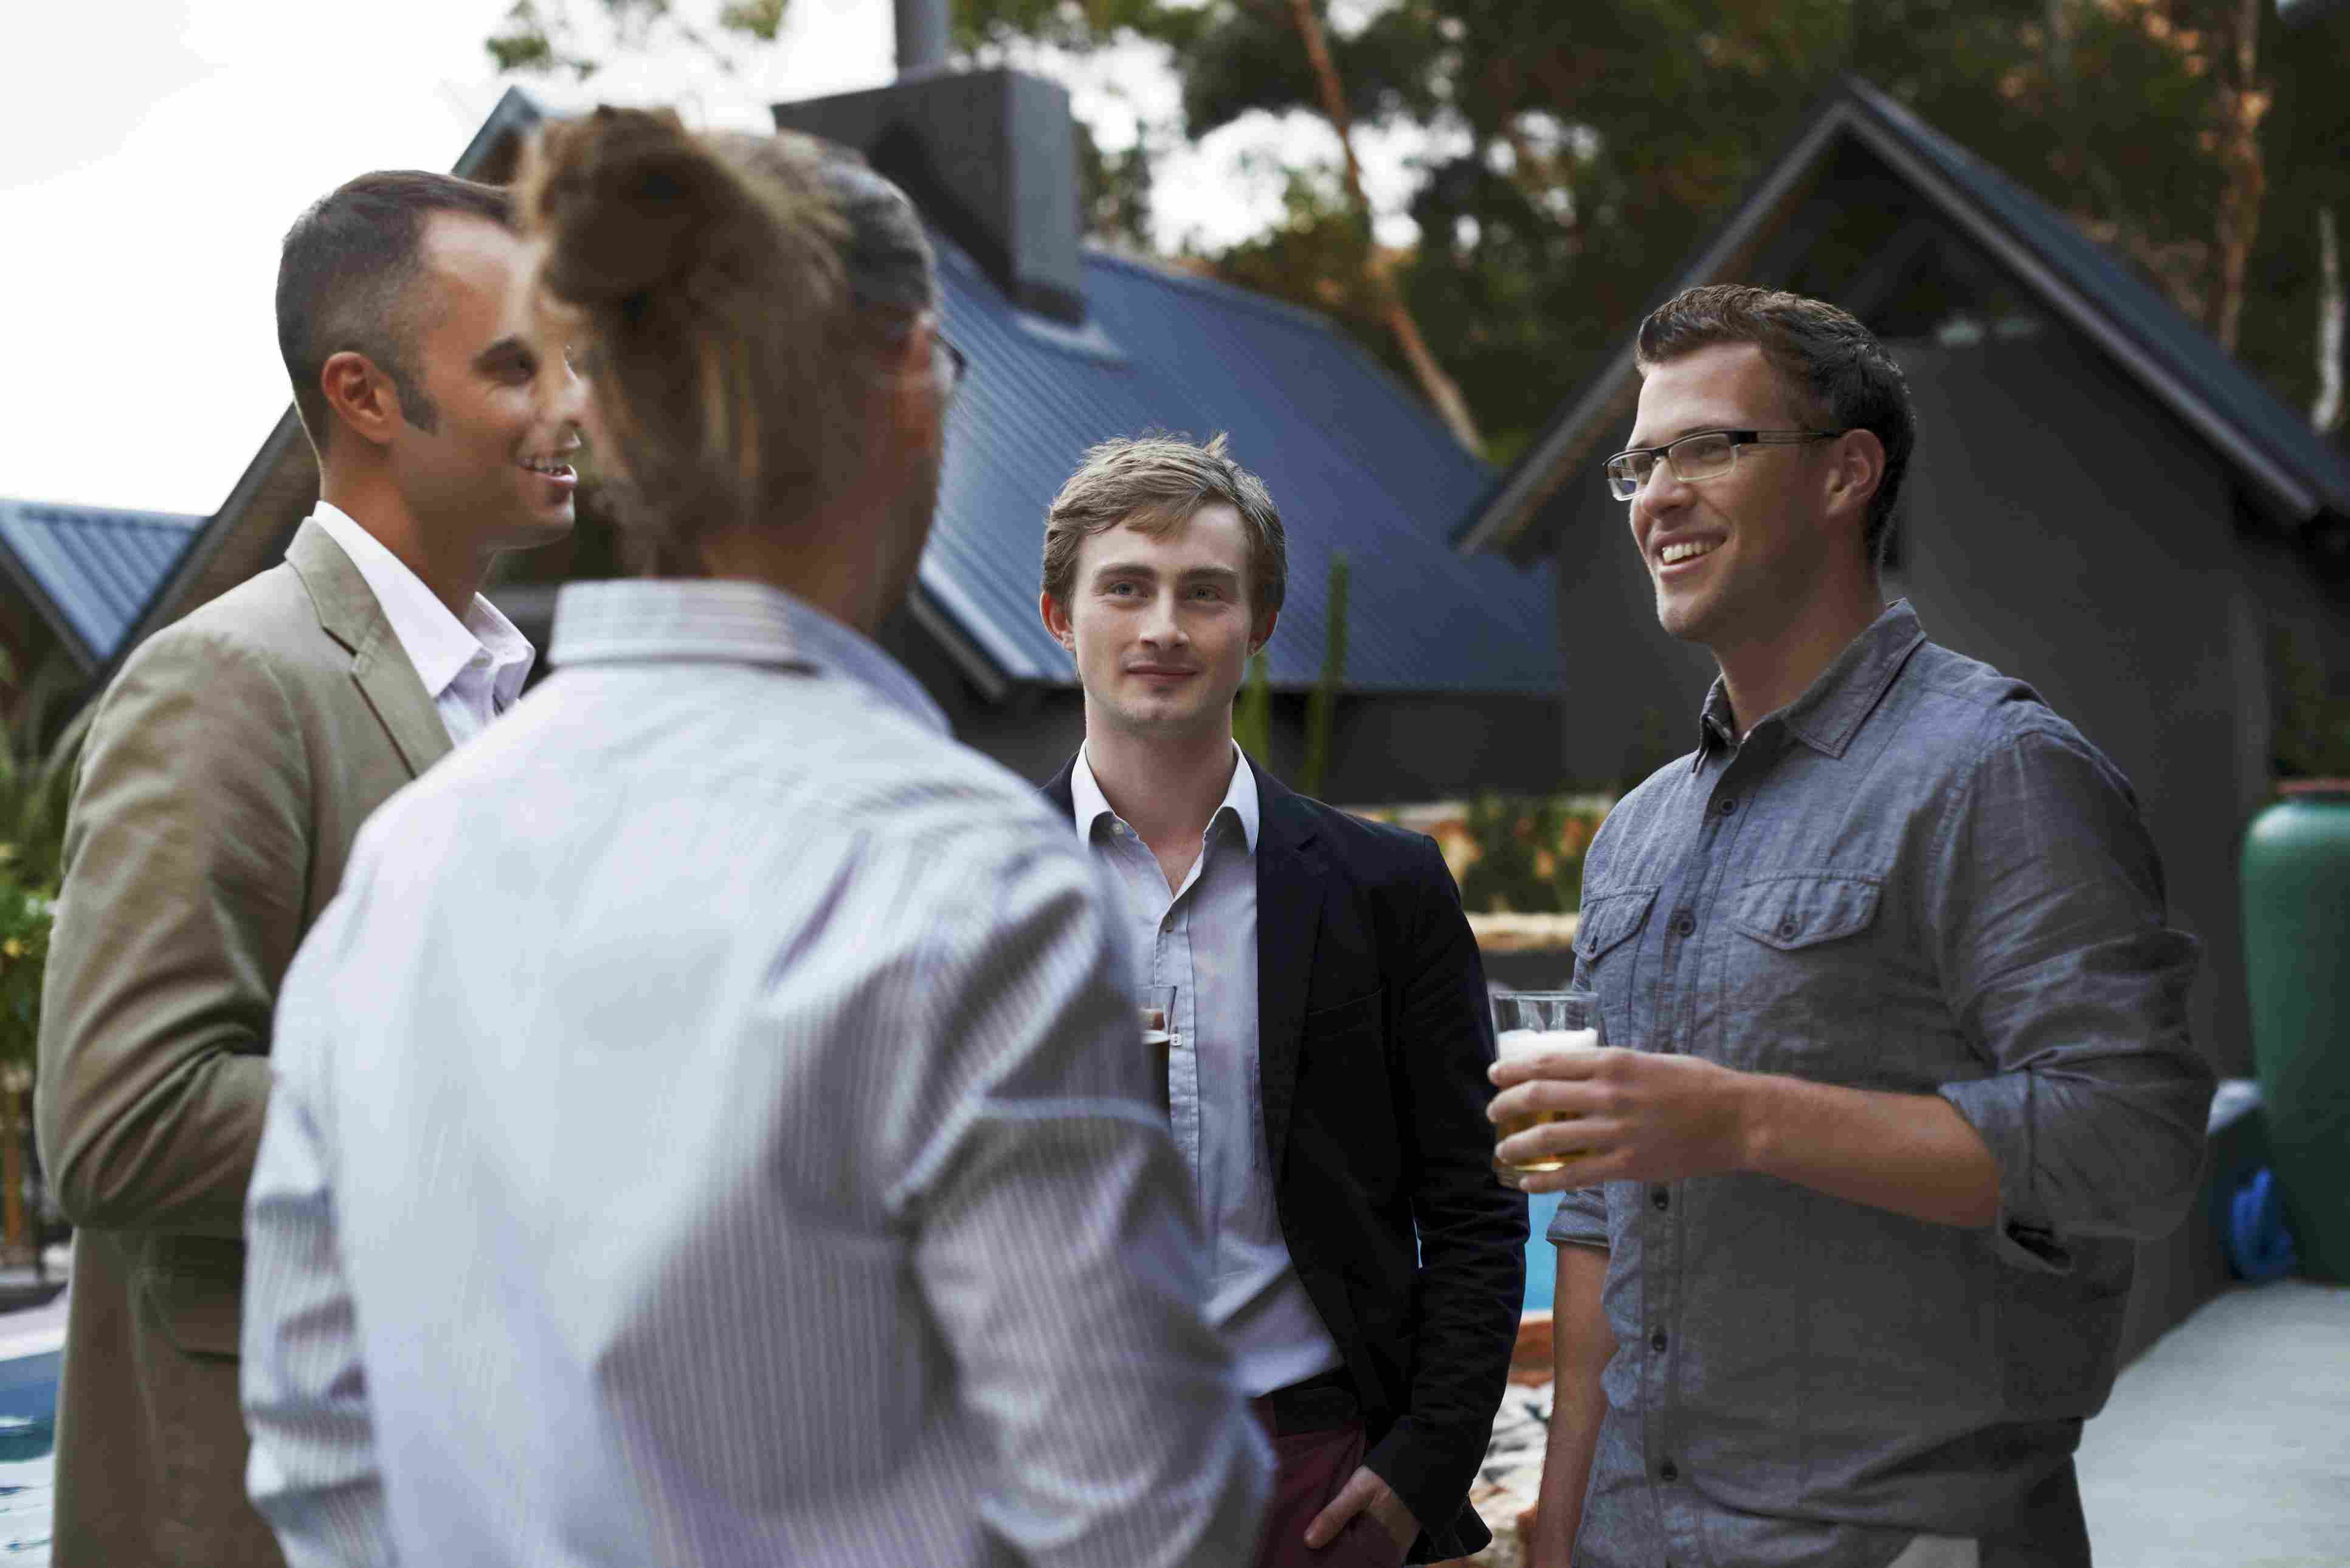 Learn how to make small talk at a party.